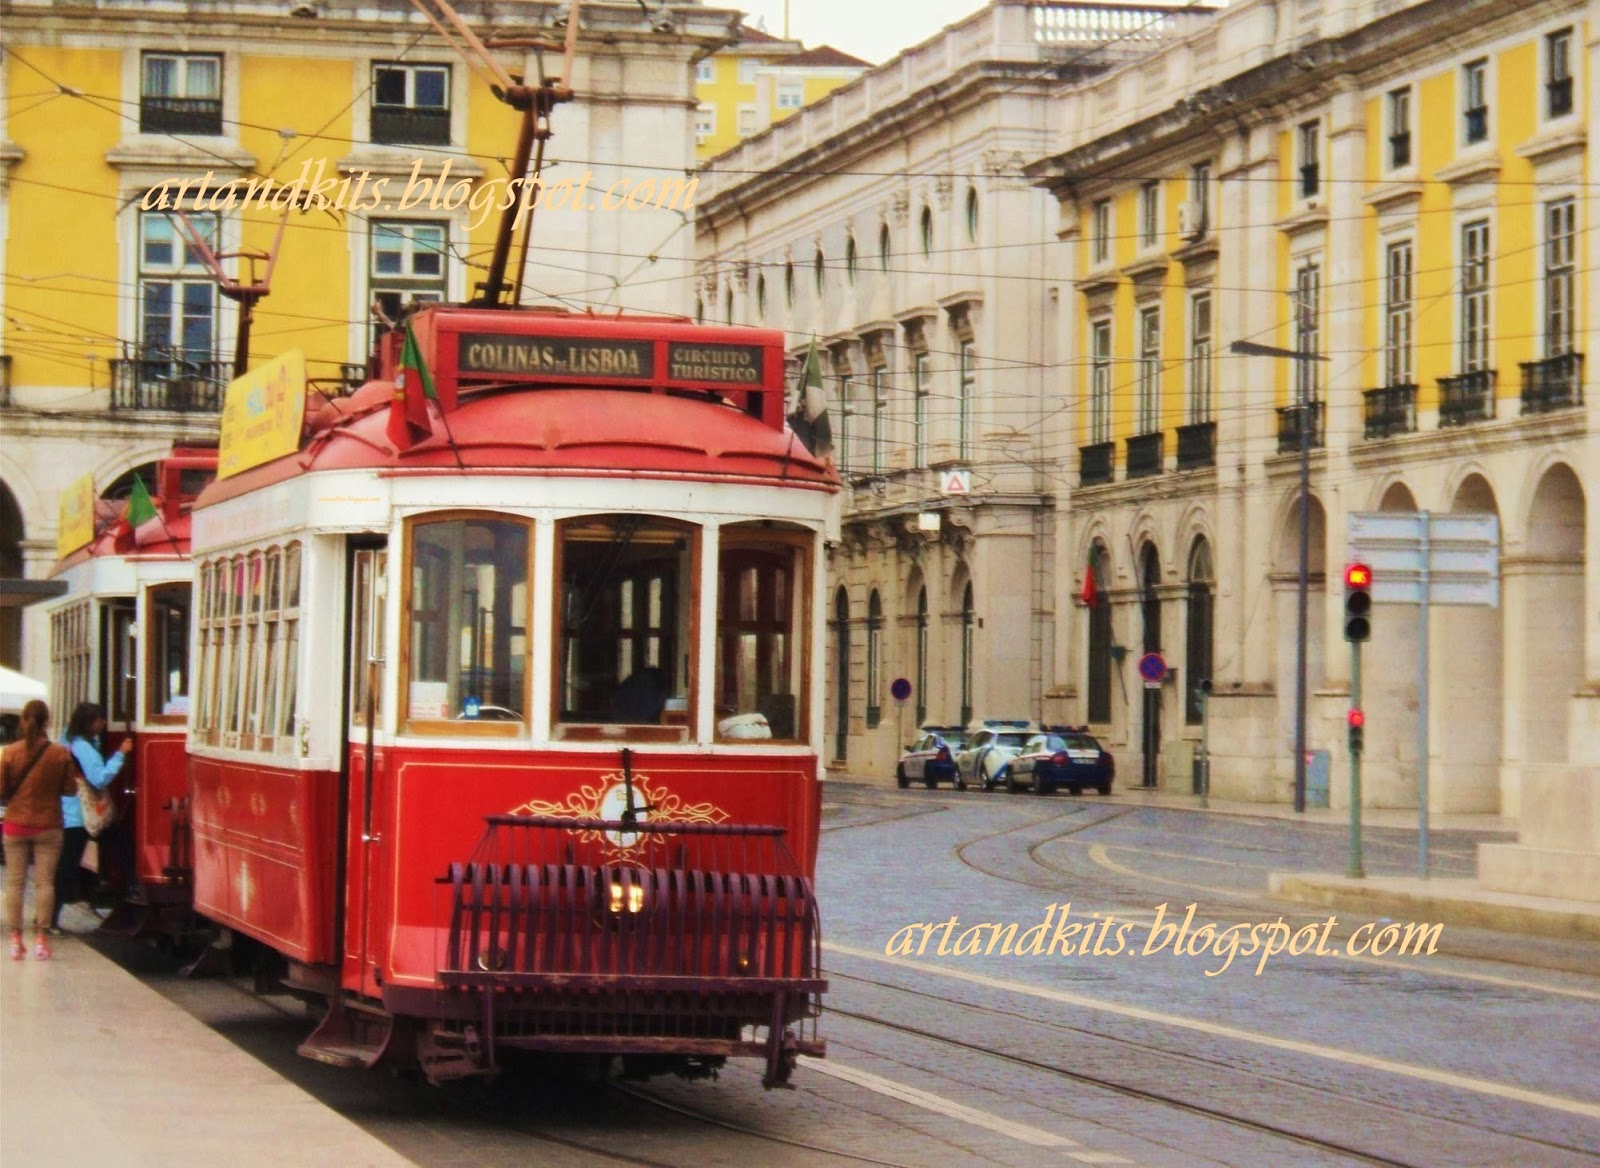 Lisboa... a capital de Portugal. A mais antiga cidade da Europa Ocidental, e uma das mais antigas cidades do mundo. / Lisbon... Portugal's capital. The oldest city in Western Europe and one of the oldest cities in the world.